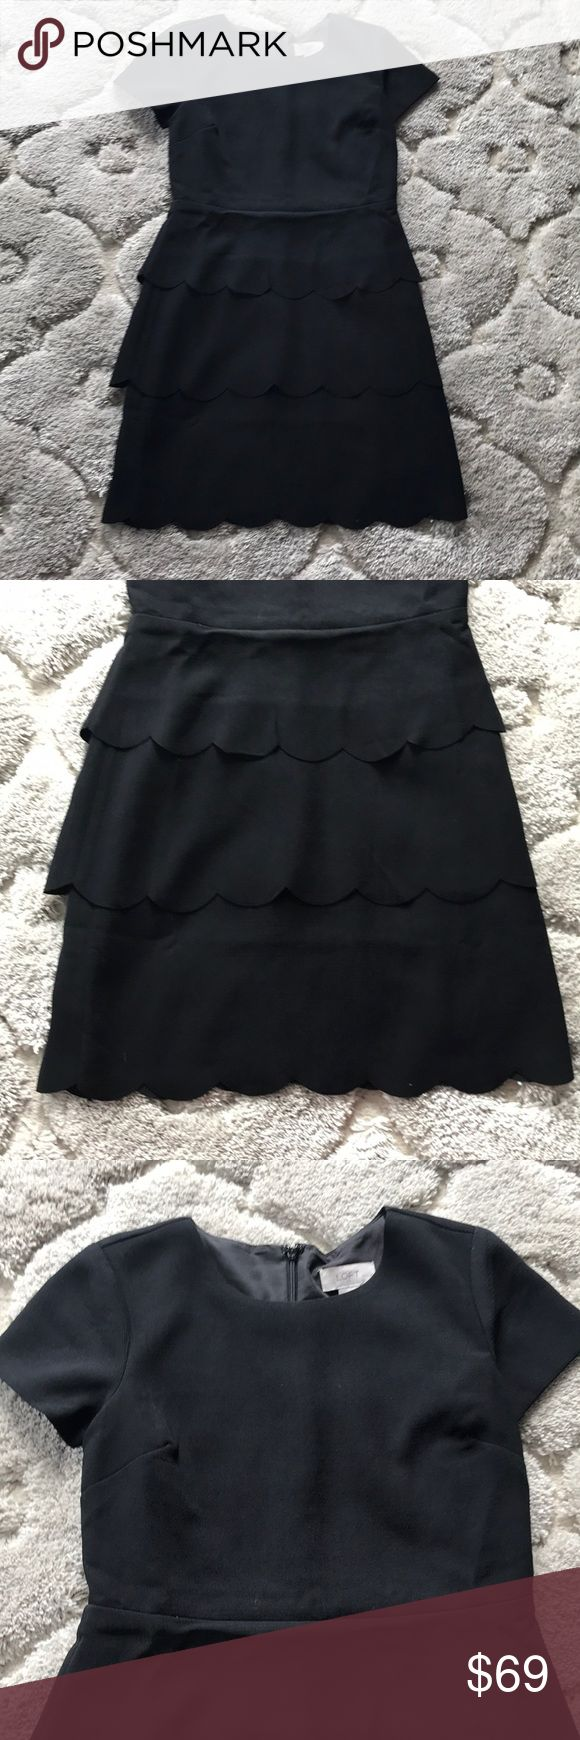 LOFT Little Black Dress The LBD is a timeless classic all about the details. The…